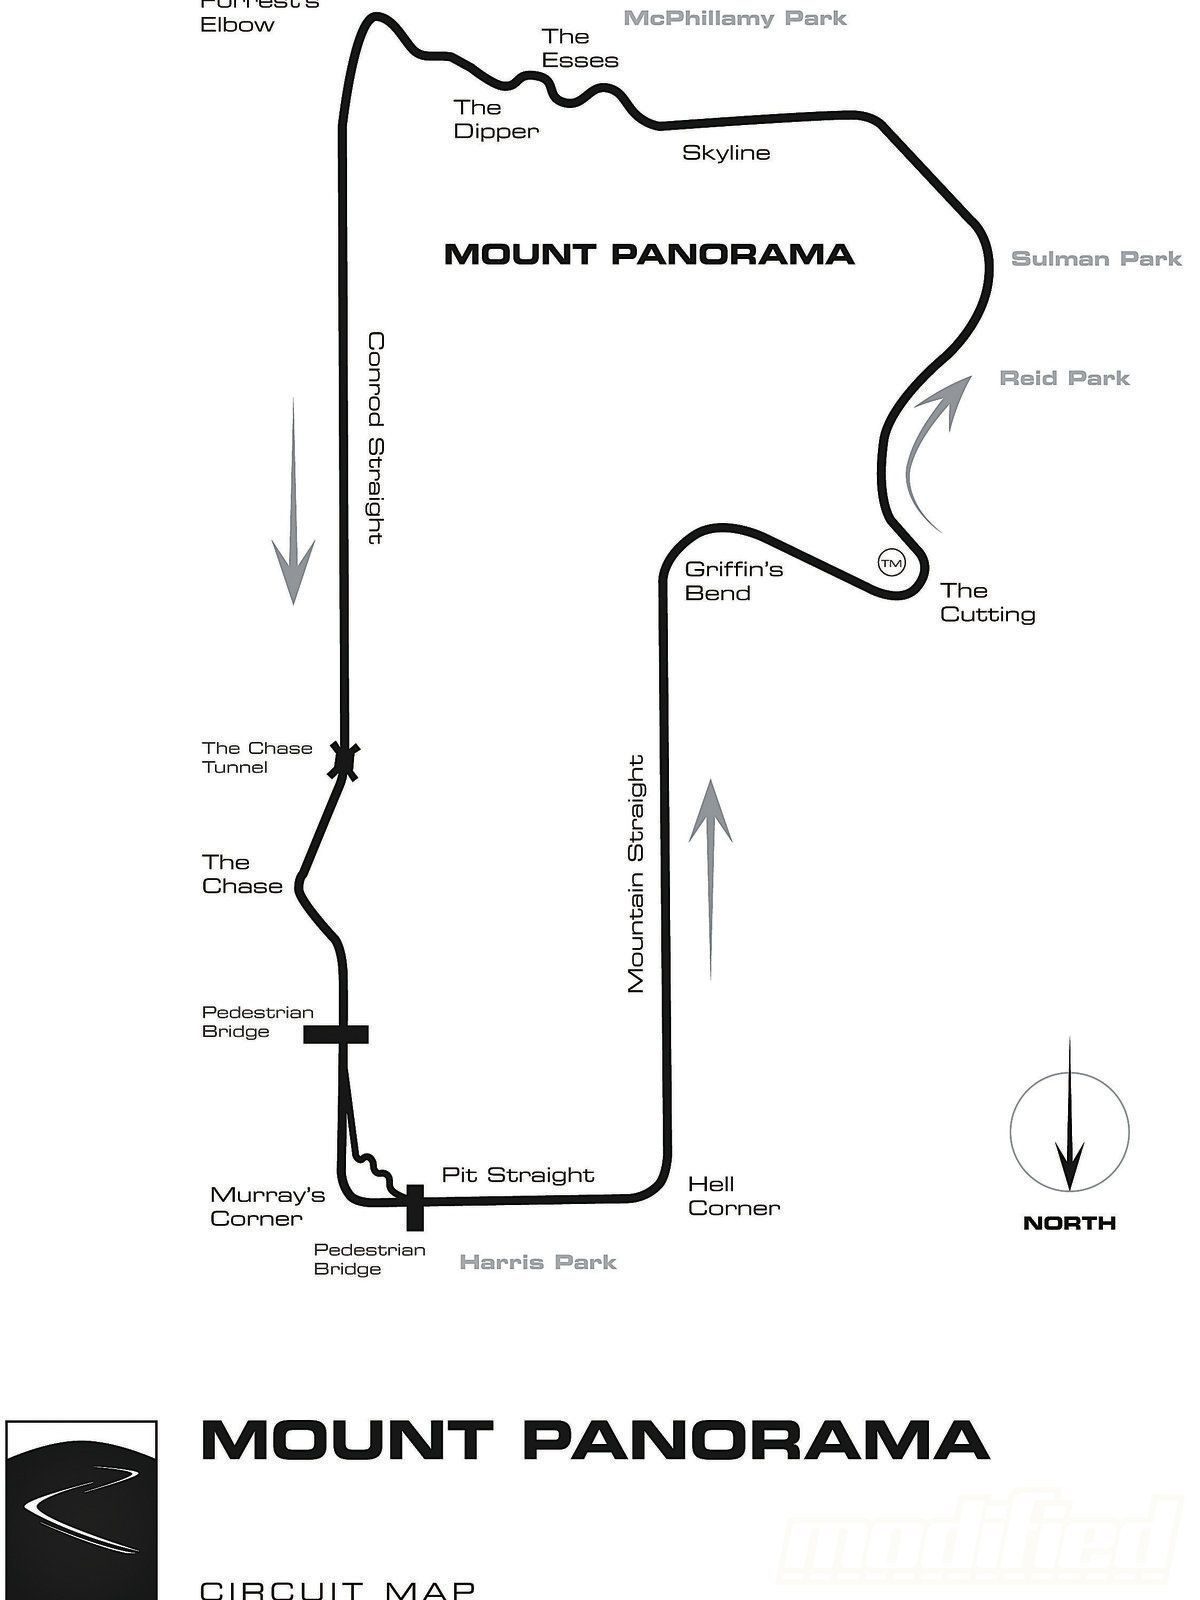 Mt Panorama Bathurst A Great Circuit That The Map Doesn T Do Justice To